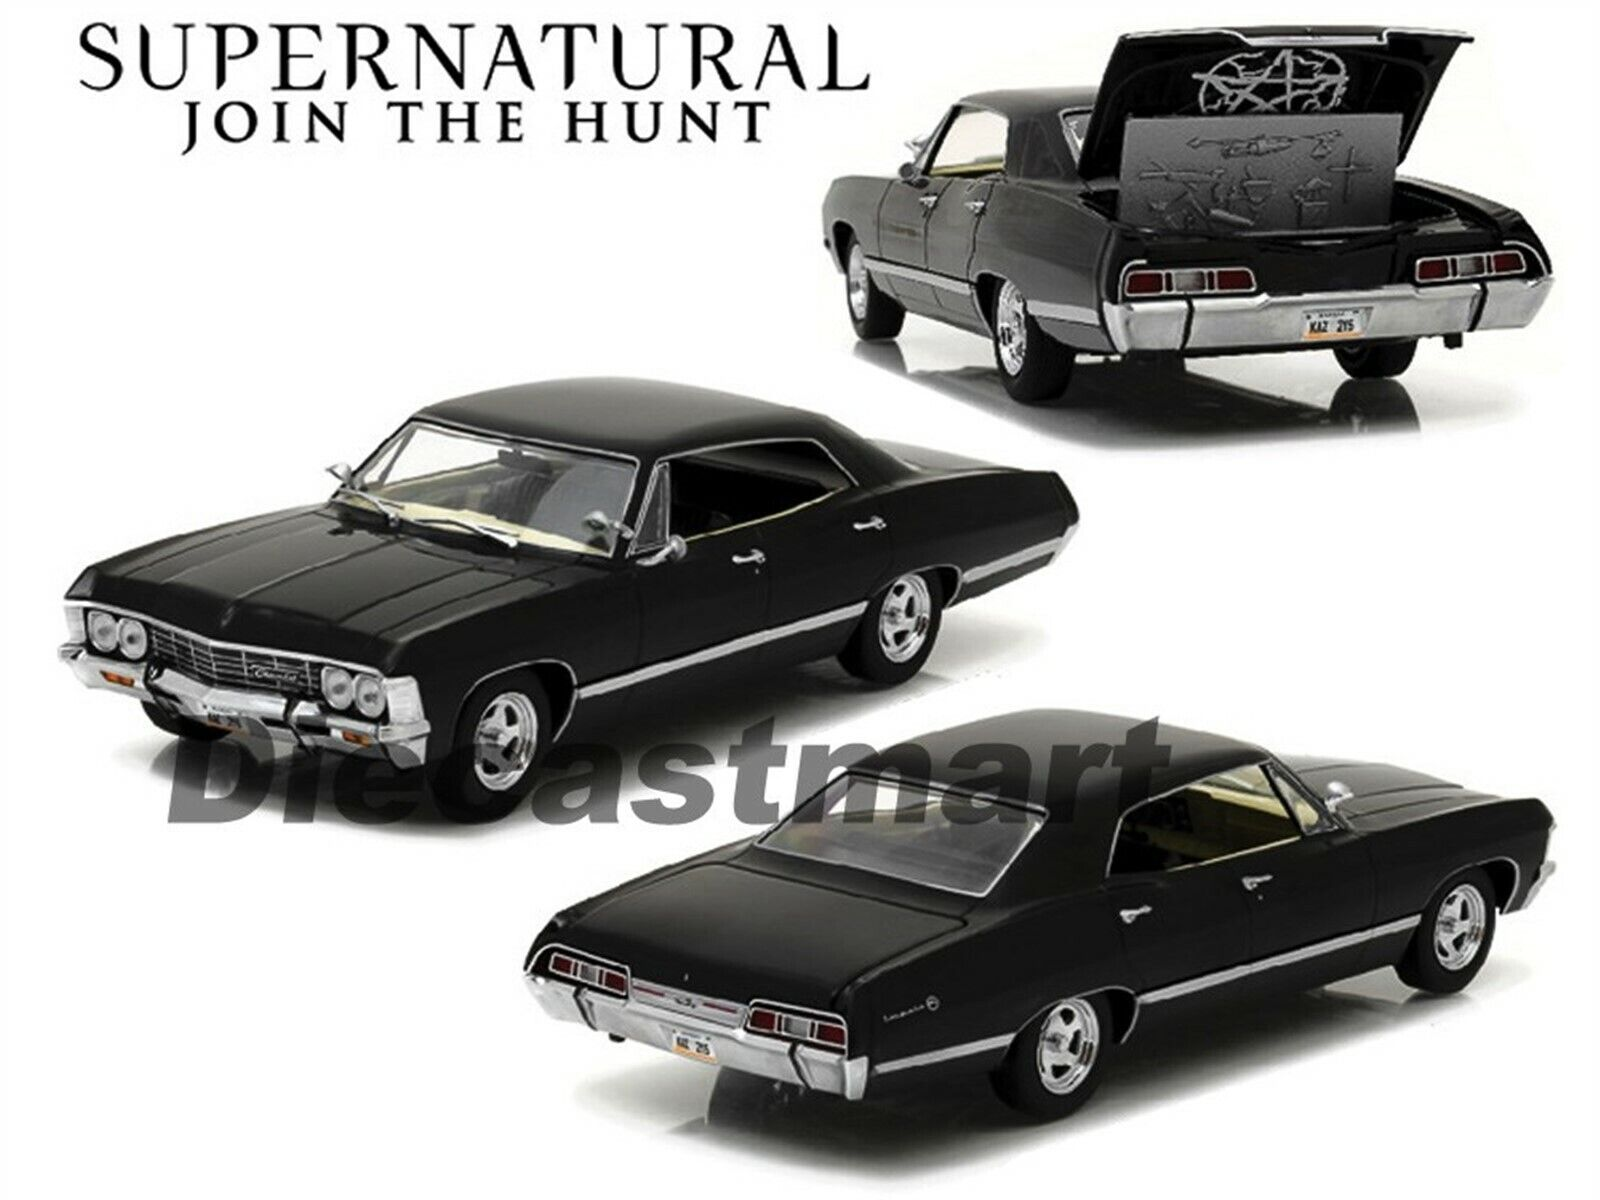 Greenlight 1 24 1967 Chevy Impala Sport Sedan Supernatural 2005 Diecast 84032 812982025298 Ebay